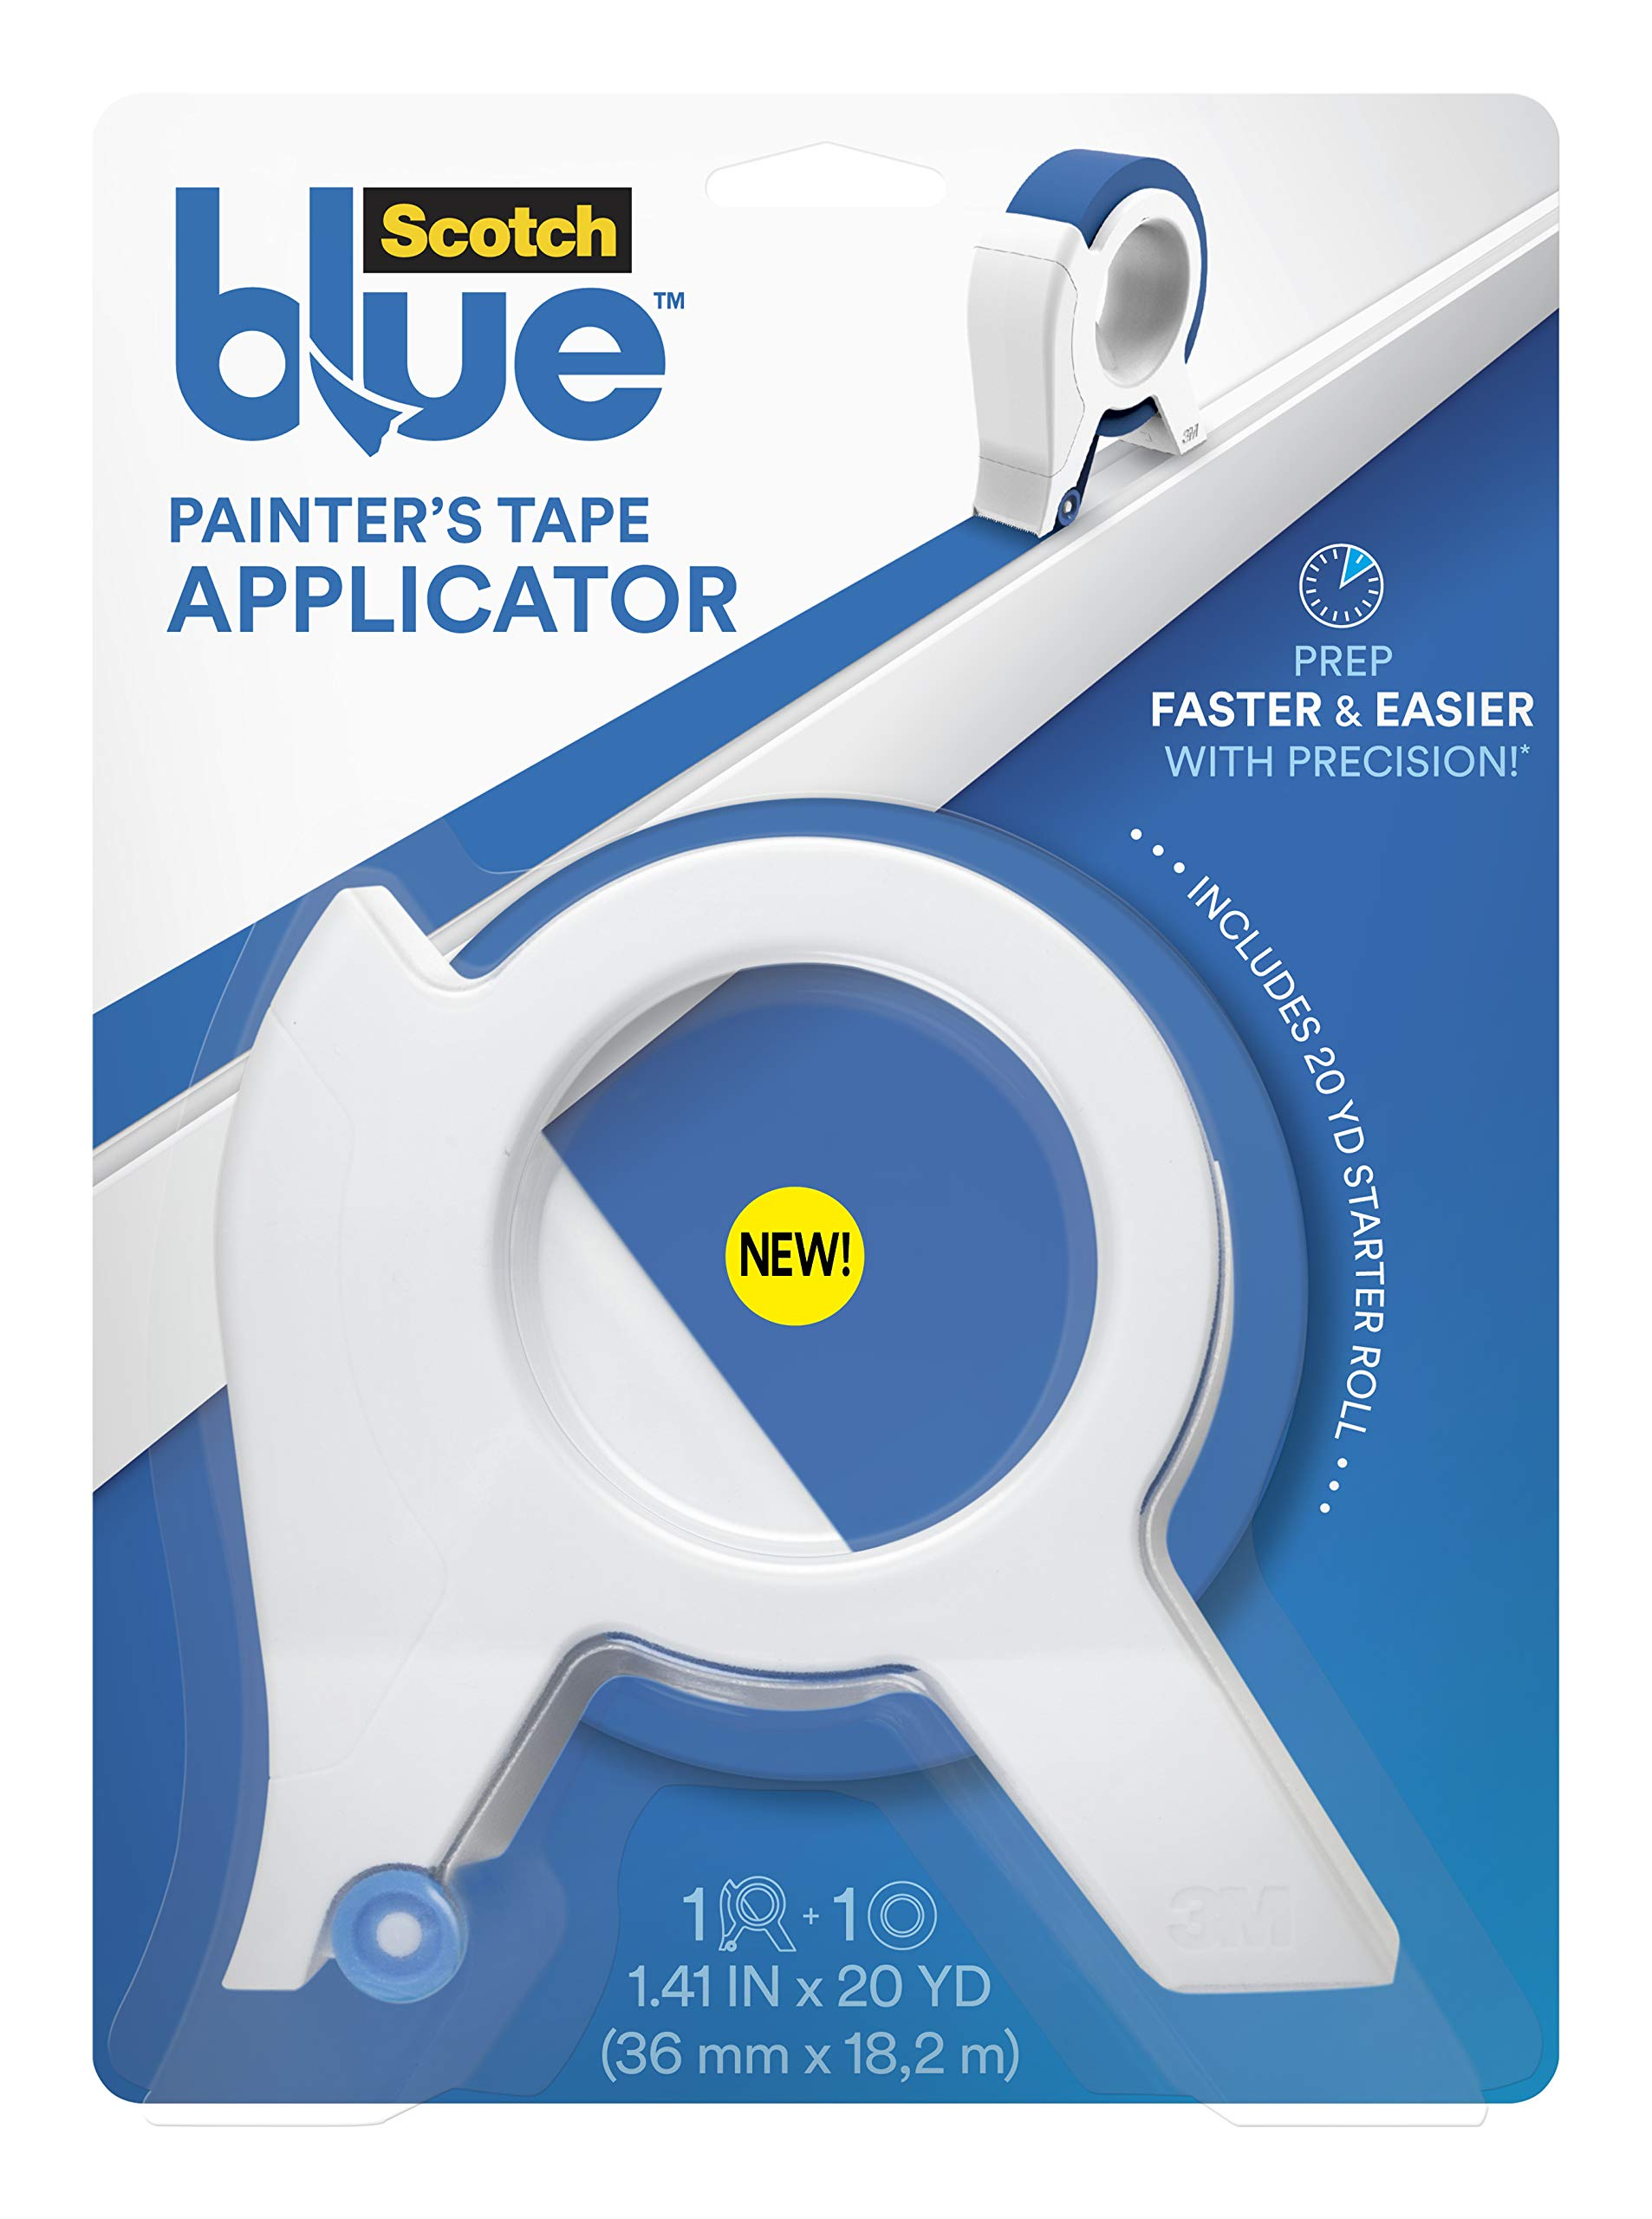 ScotchBlue TA3-SB Painter's Tape Applicator, Blue, with 1 Starter Roll 1.41 in. x 20 yd, by ScotchBlue